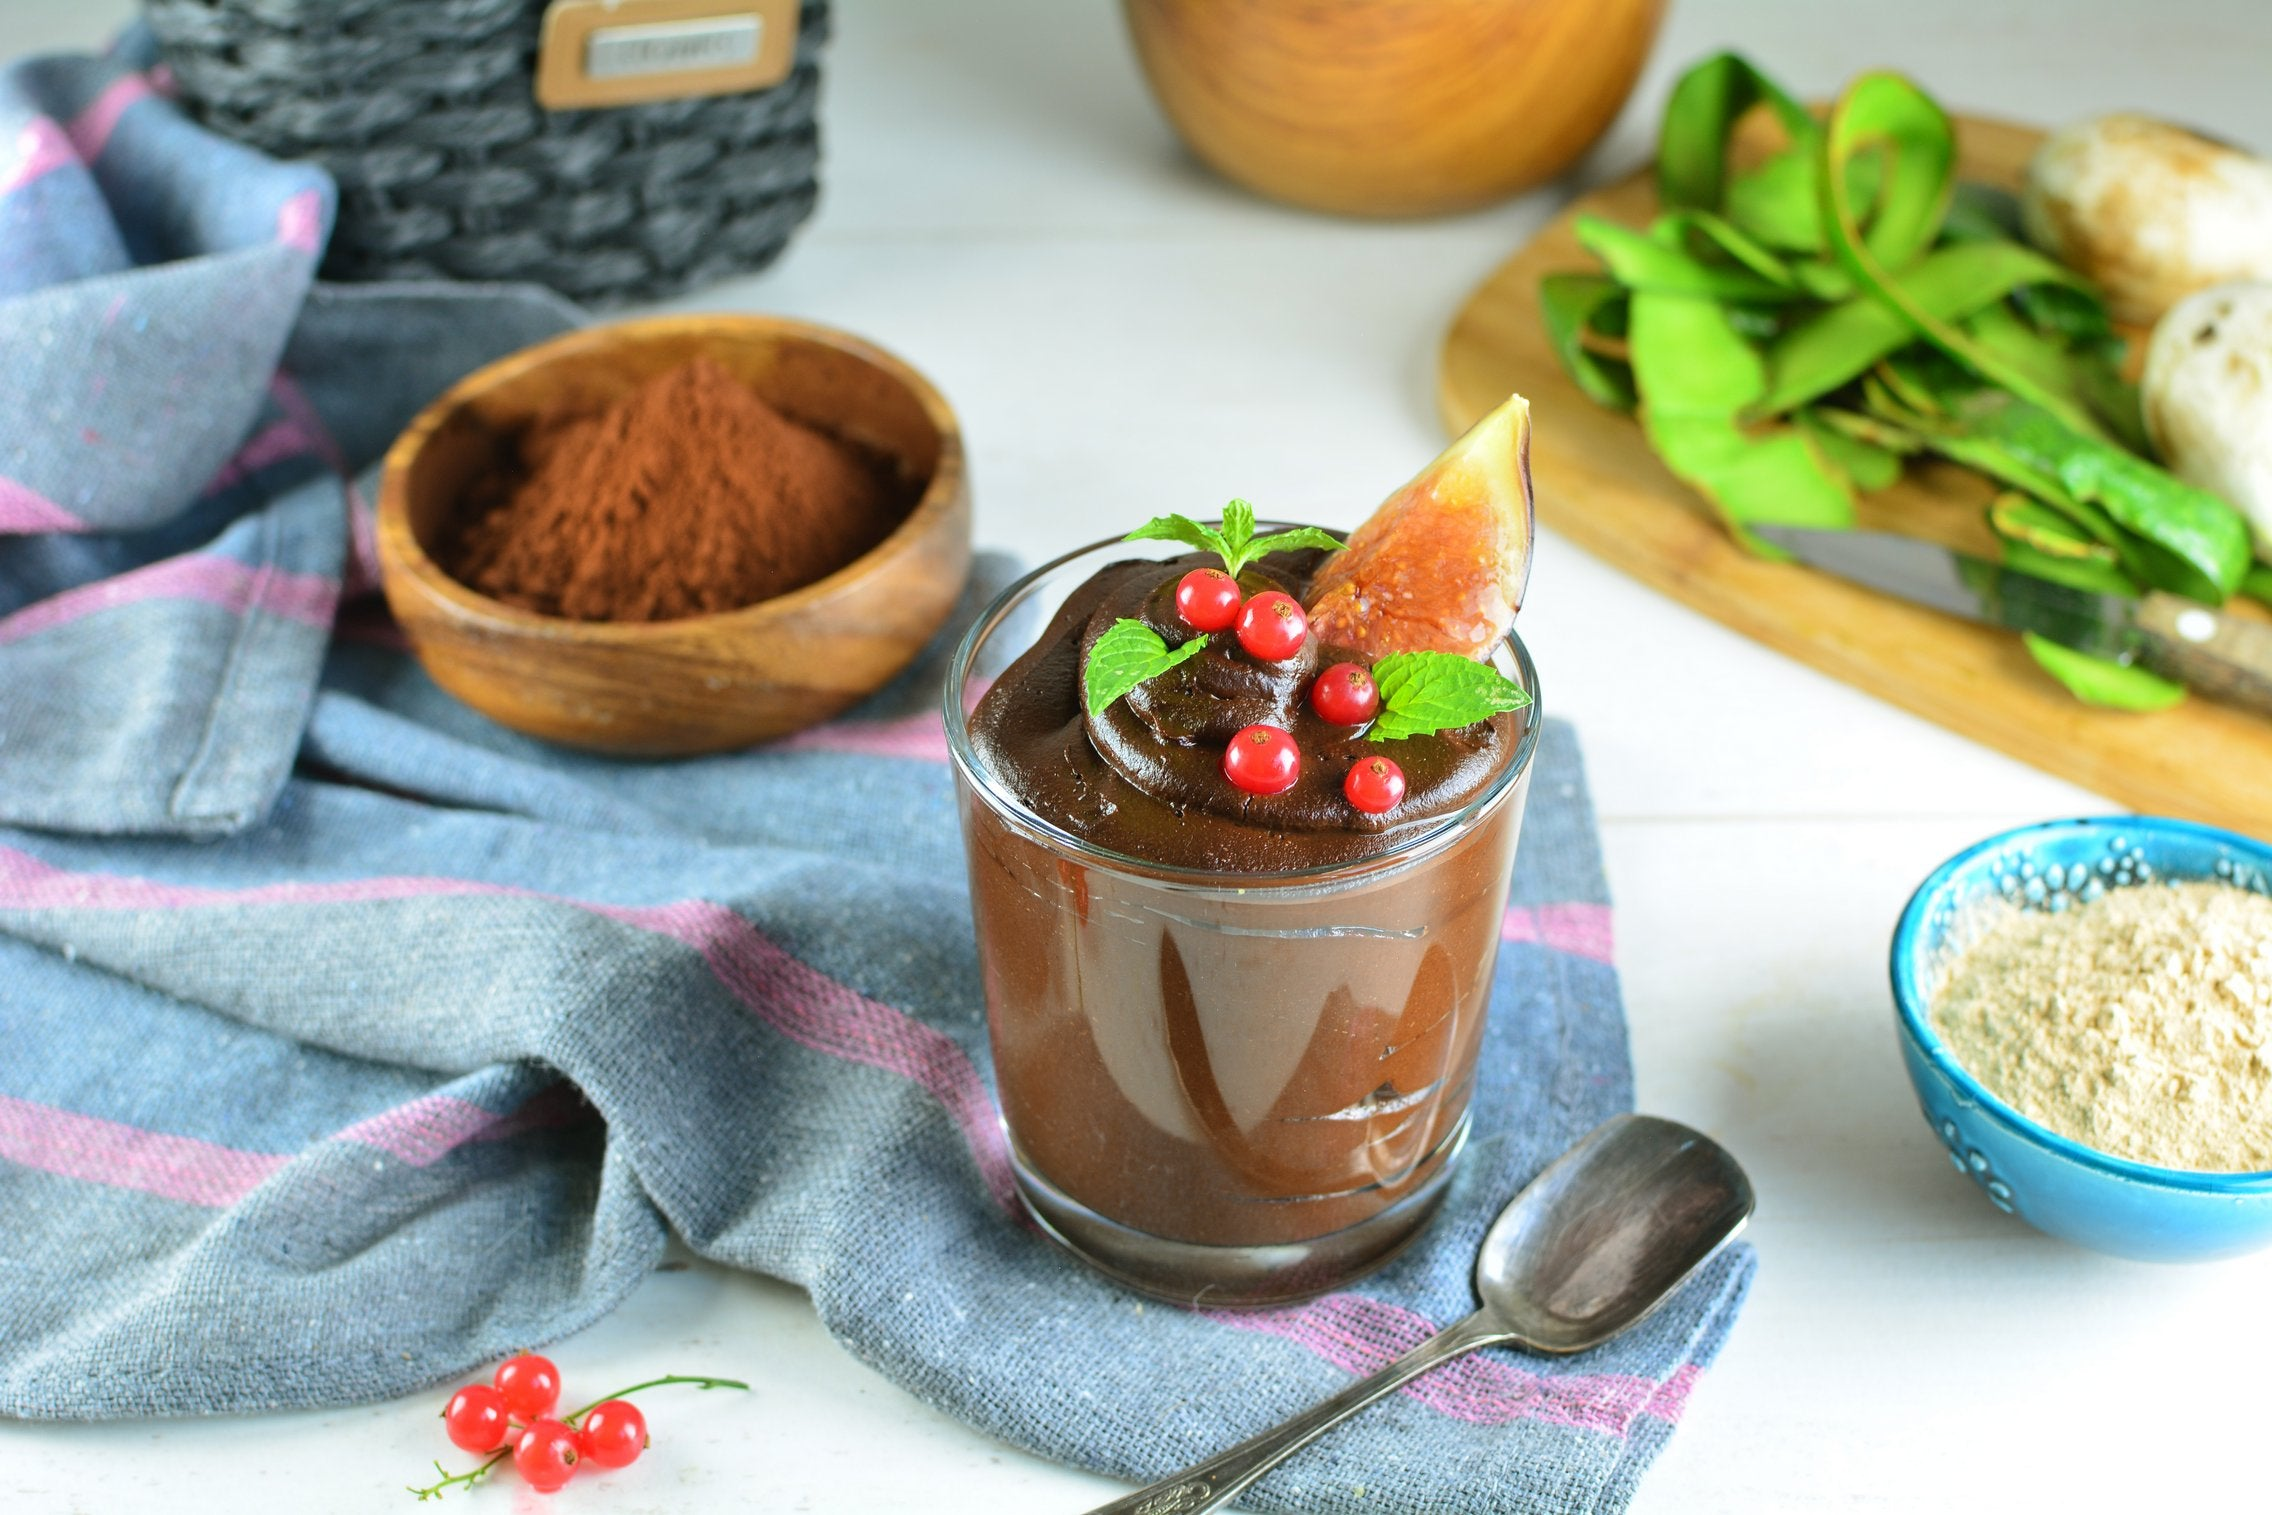 Avocado Maca Mousse with Cocoa